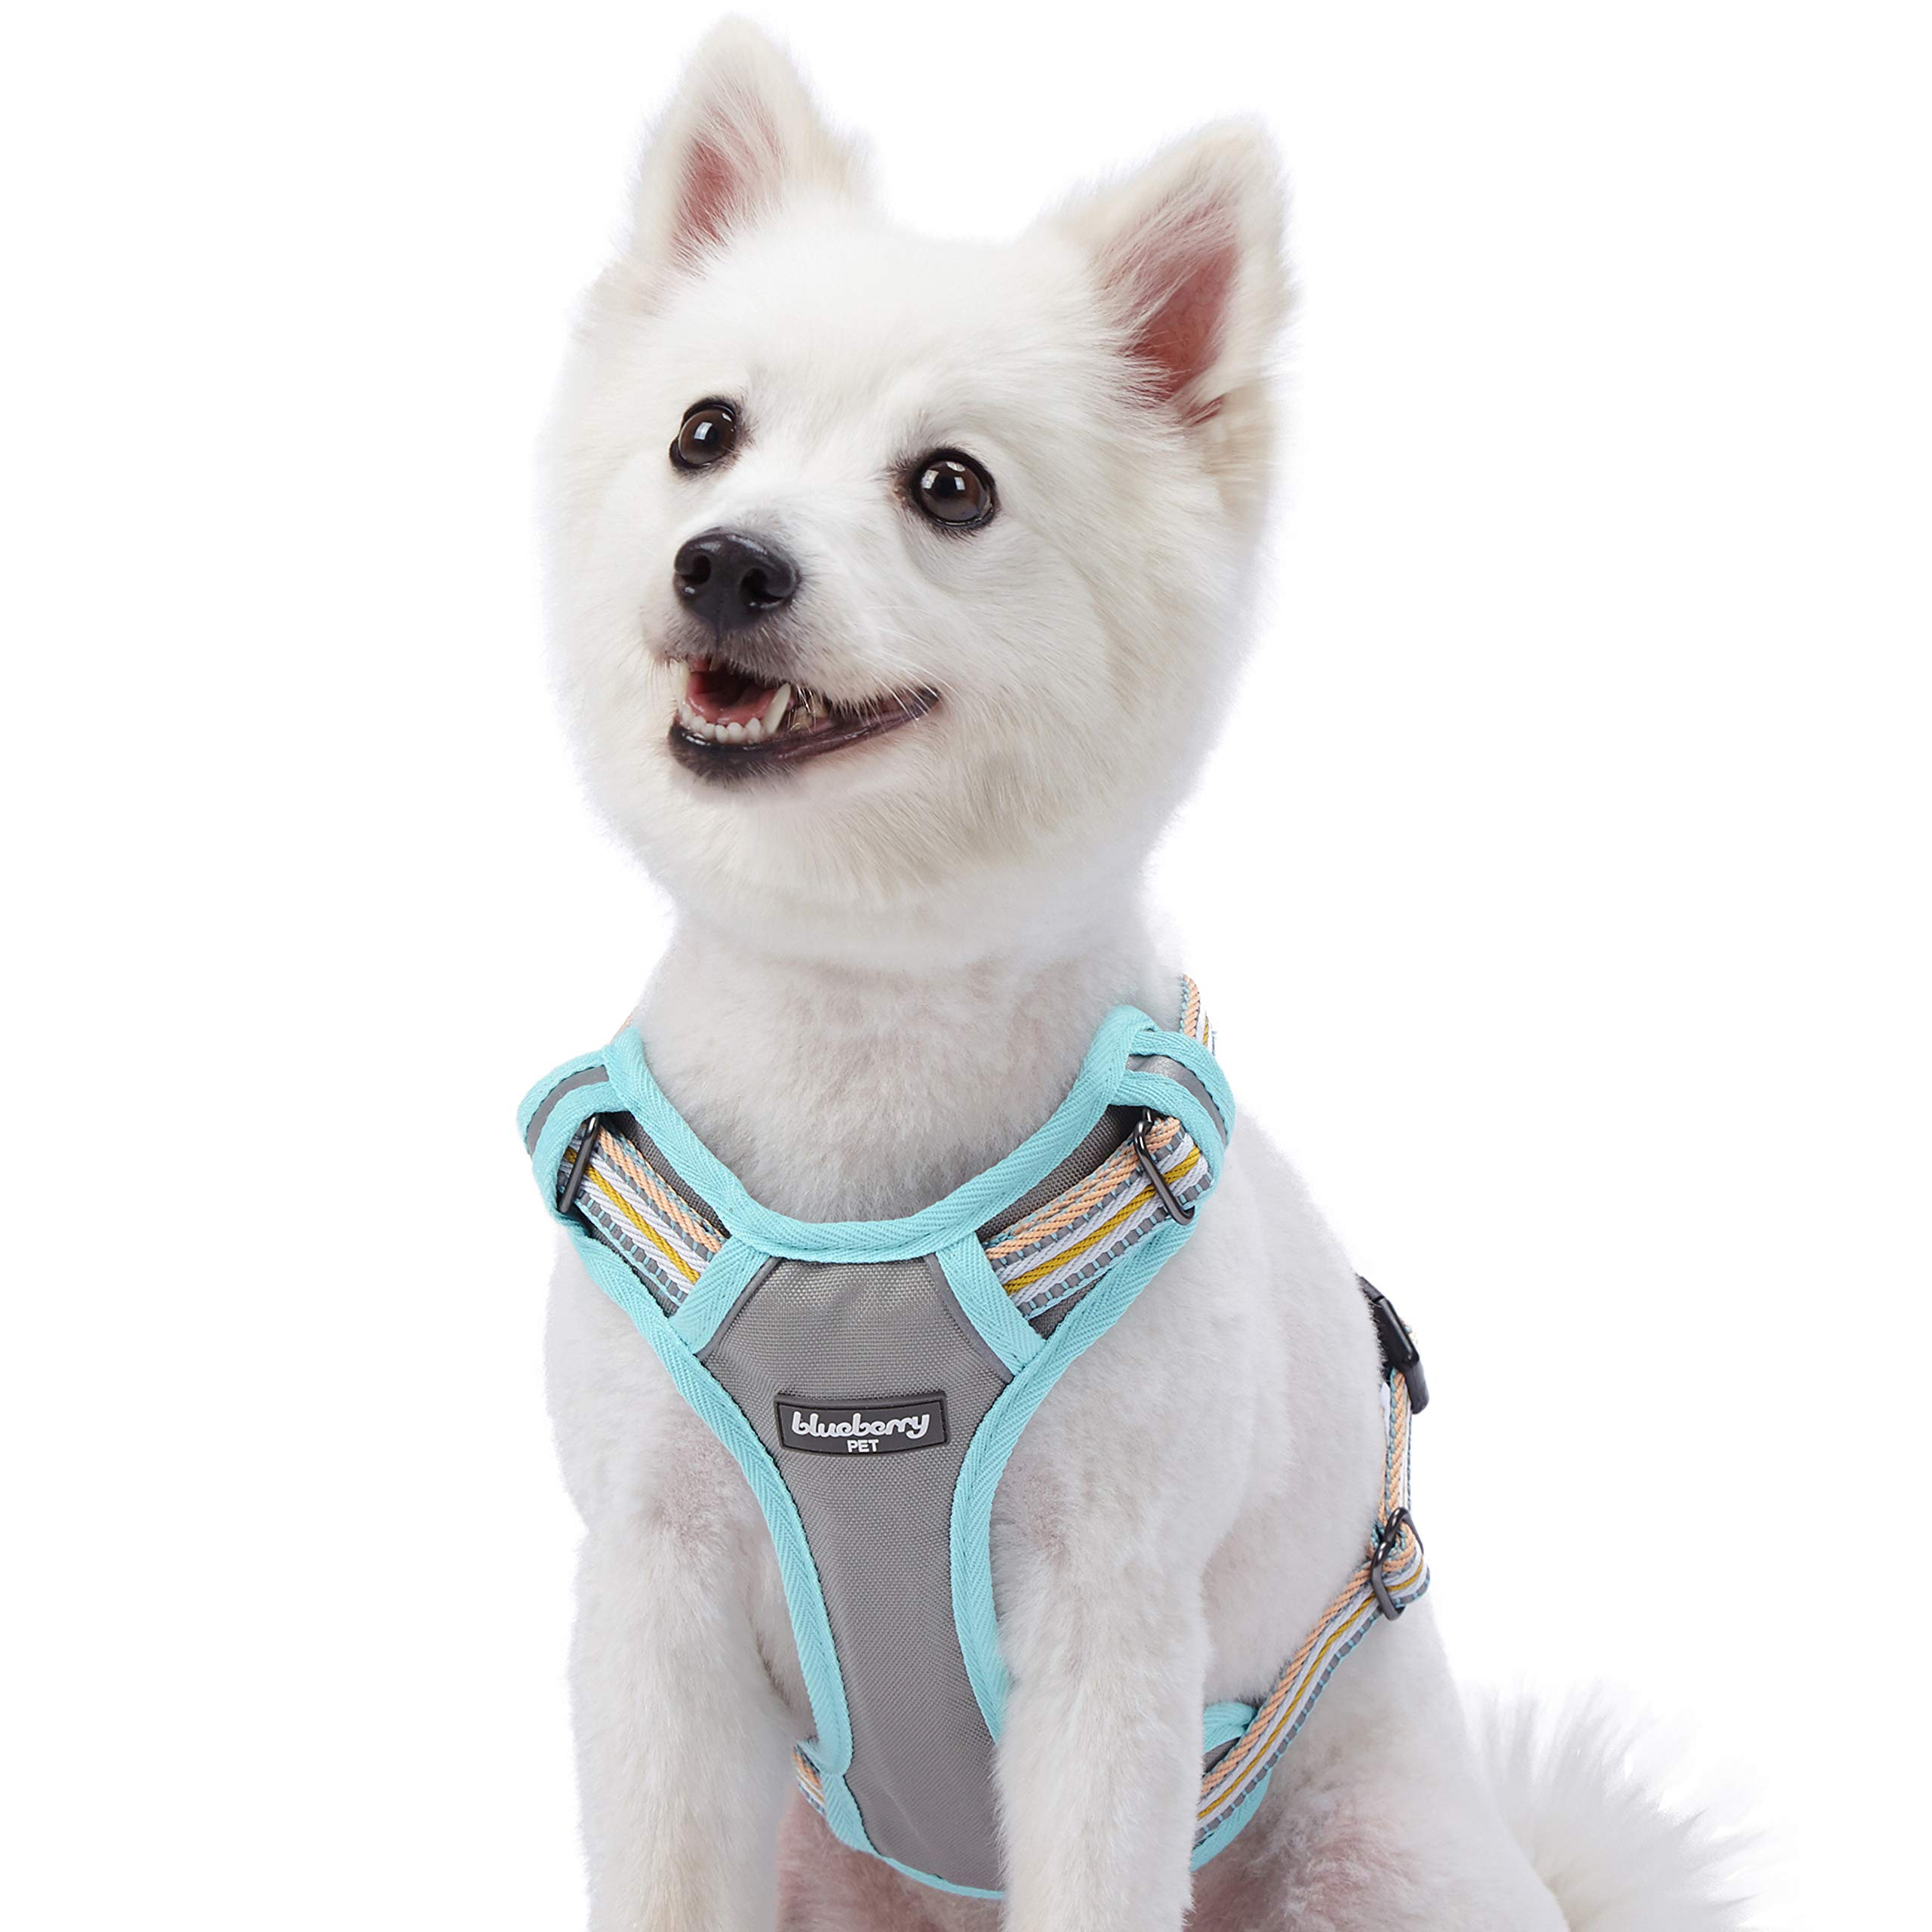 Blueberry Pet 9 Colors Soft & Comfy 3M Reflective Multi-Colored Stripe Padded Dog Harness Vest, Chest Girth 22''-26.5'', Neck 17.5''-26'', Pastel Blue & Beige, Medium, Mesh Harnesses for Dogs